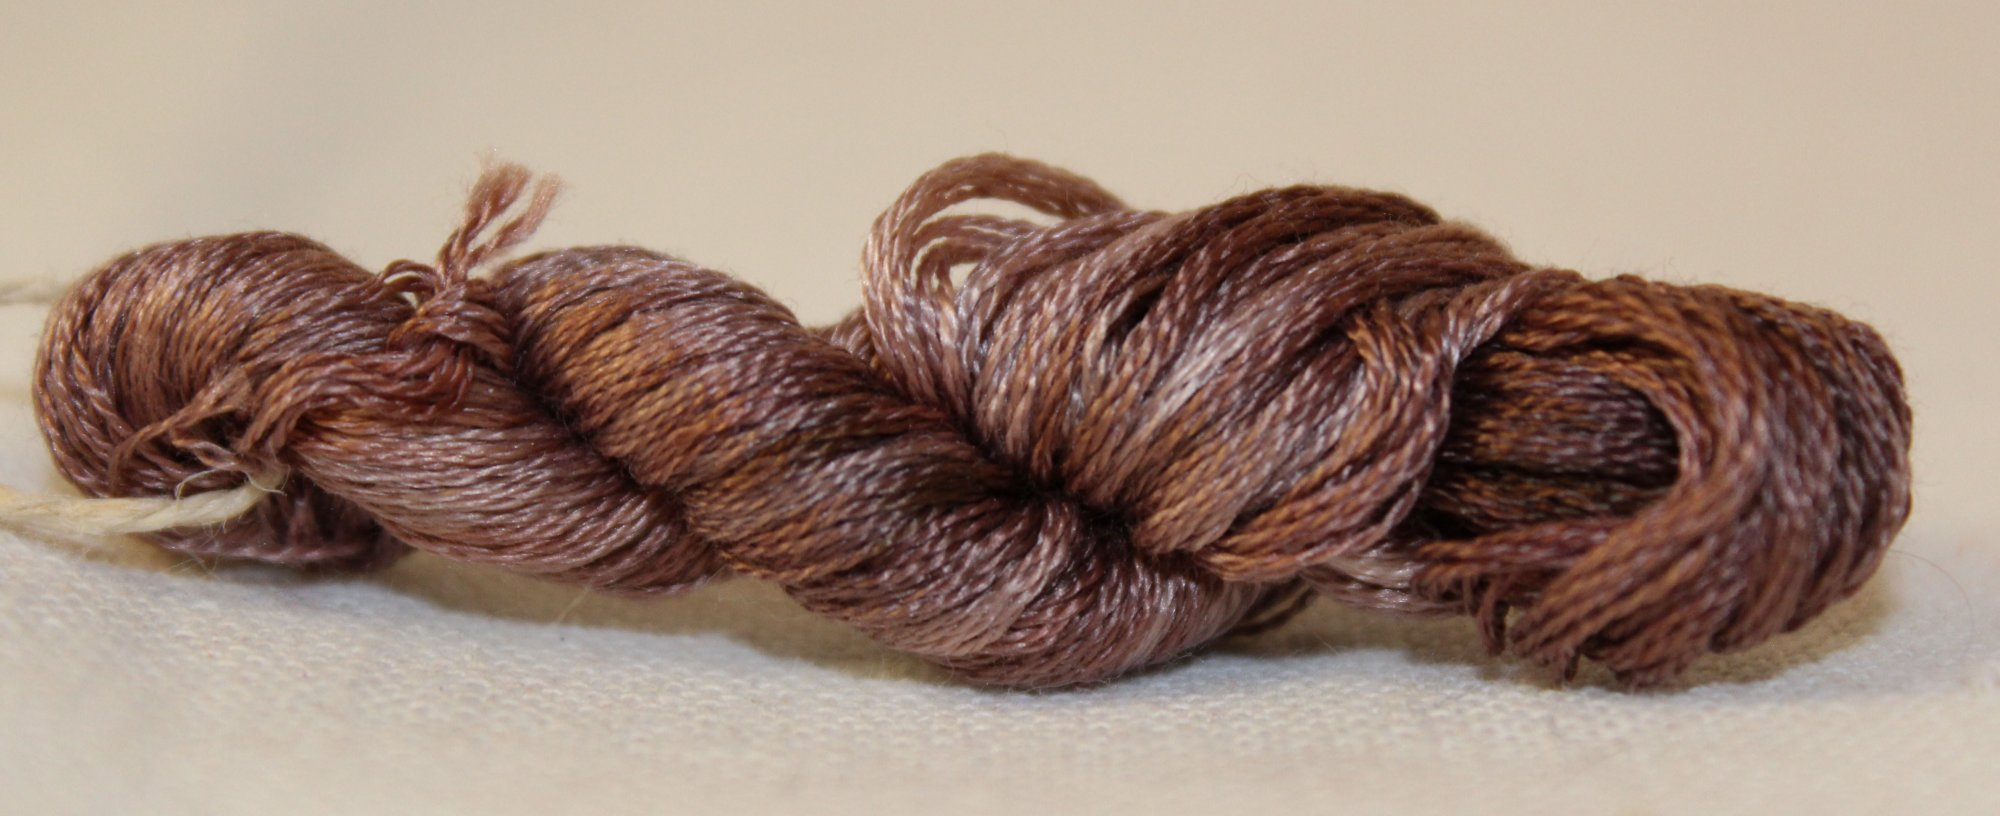 Cocoa- Hand-dyed Embroidery Floss